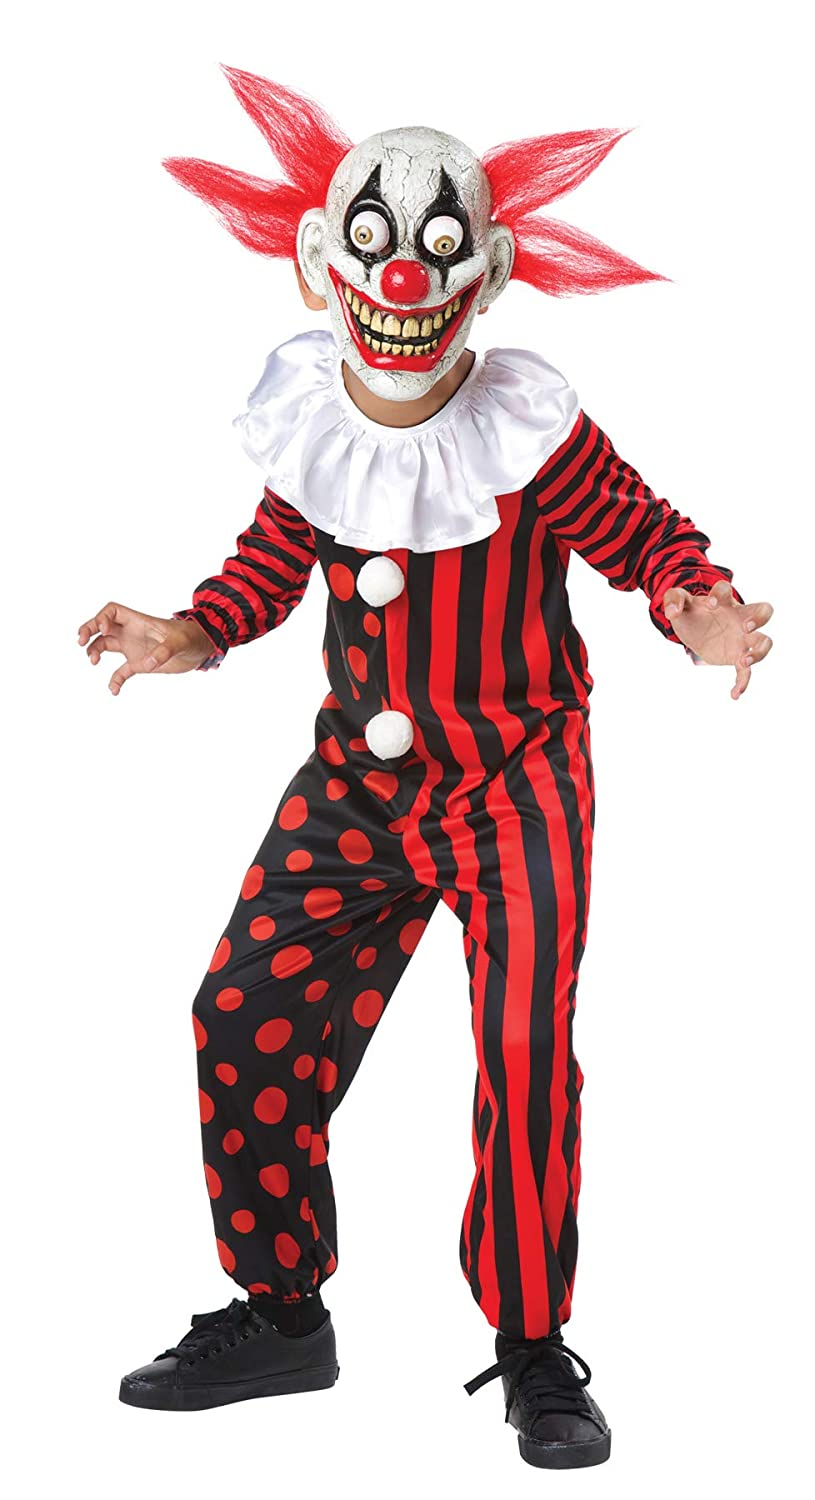 Amazon com boys googly eye clown outfit horror theme party child halloween costume child l 10 12 clothing